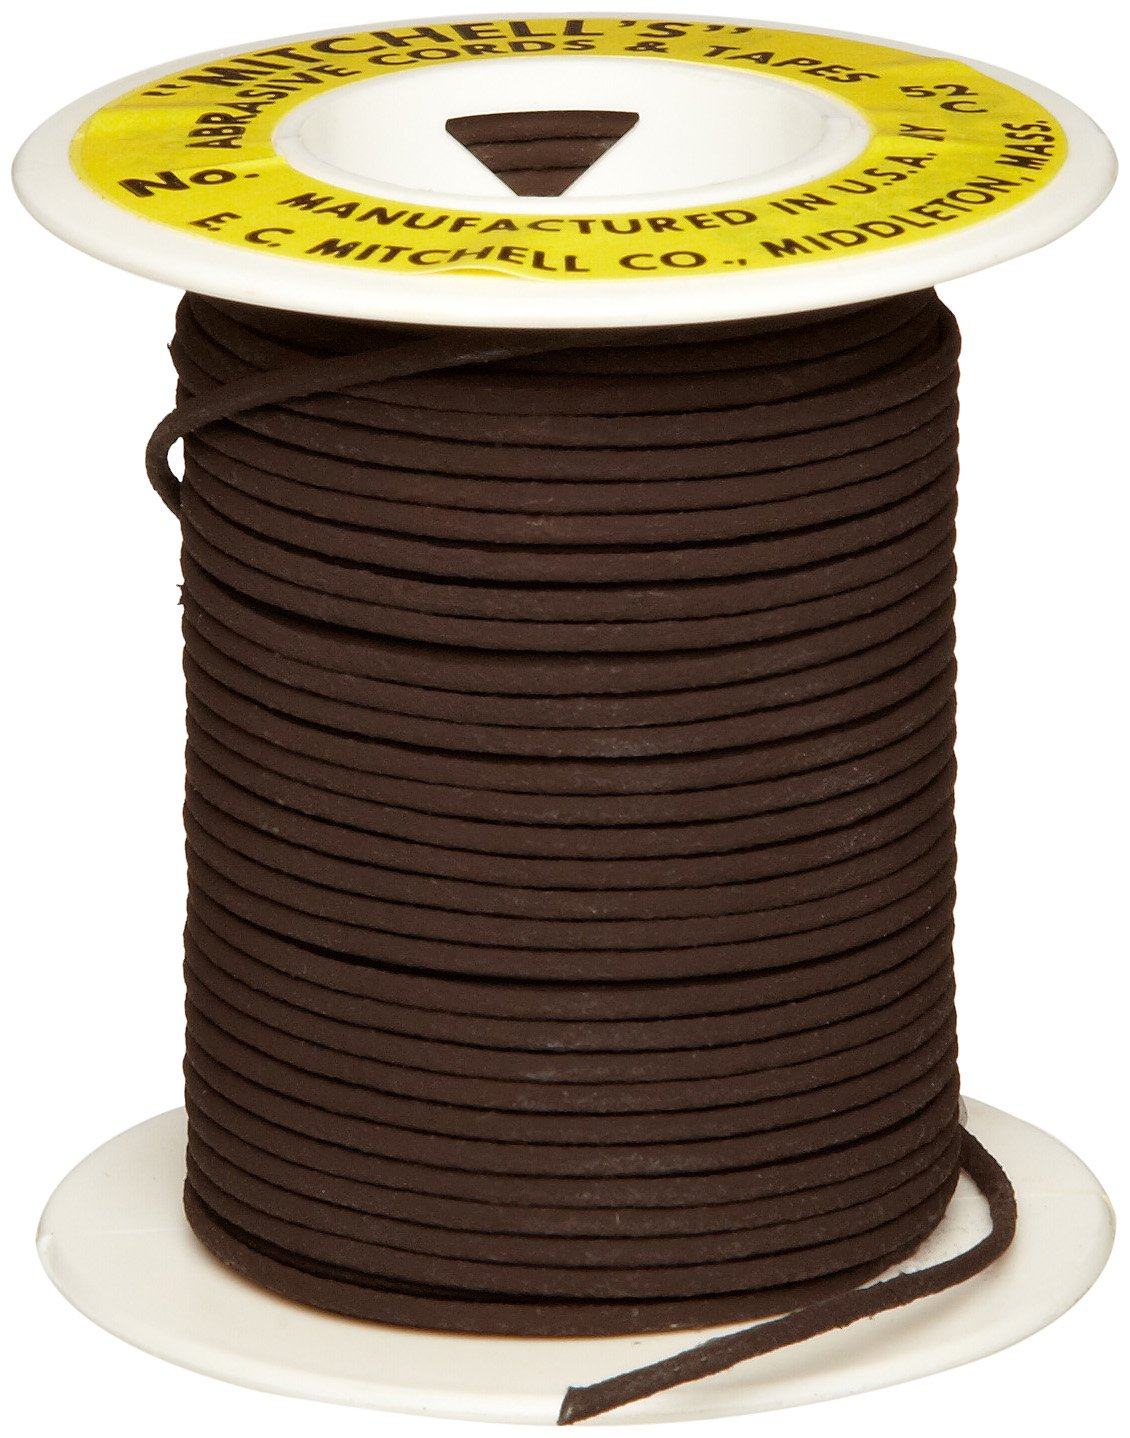 Mitchell Abrasives 52-C Round Crocus Polishing Cord, .055'' Diameter x 50 Feet by Mitchell Abrasives